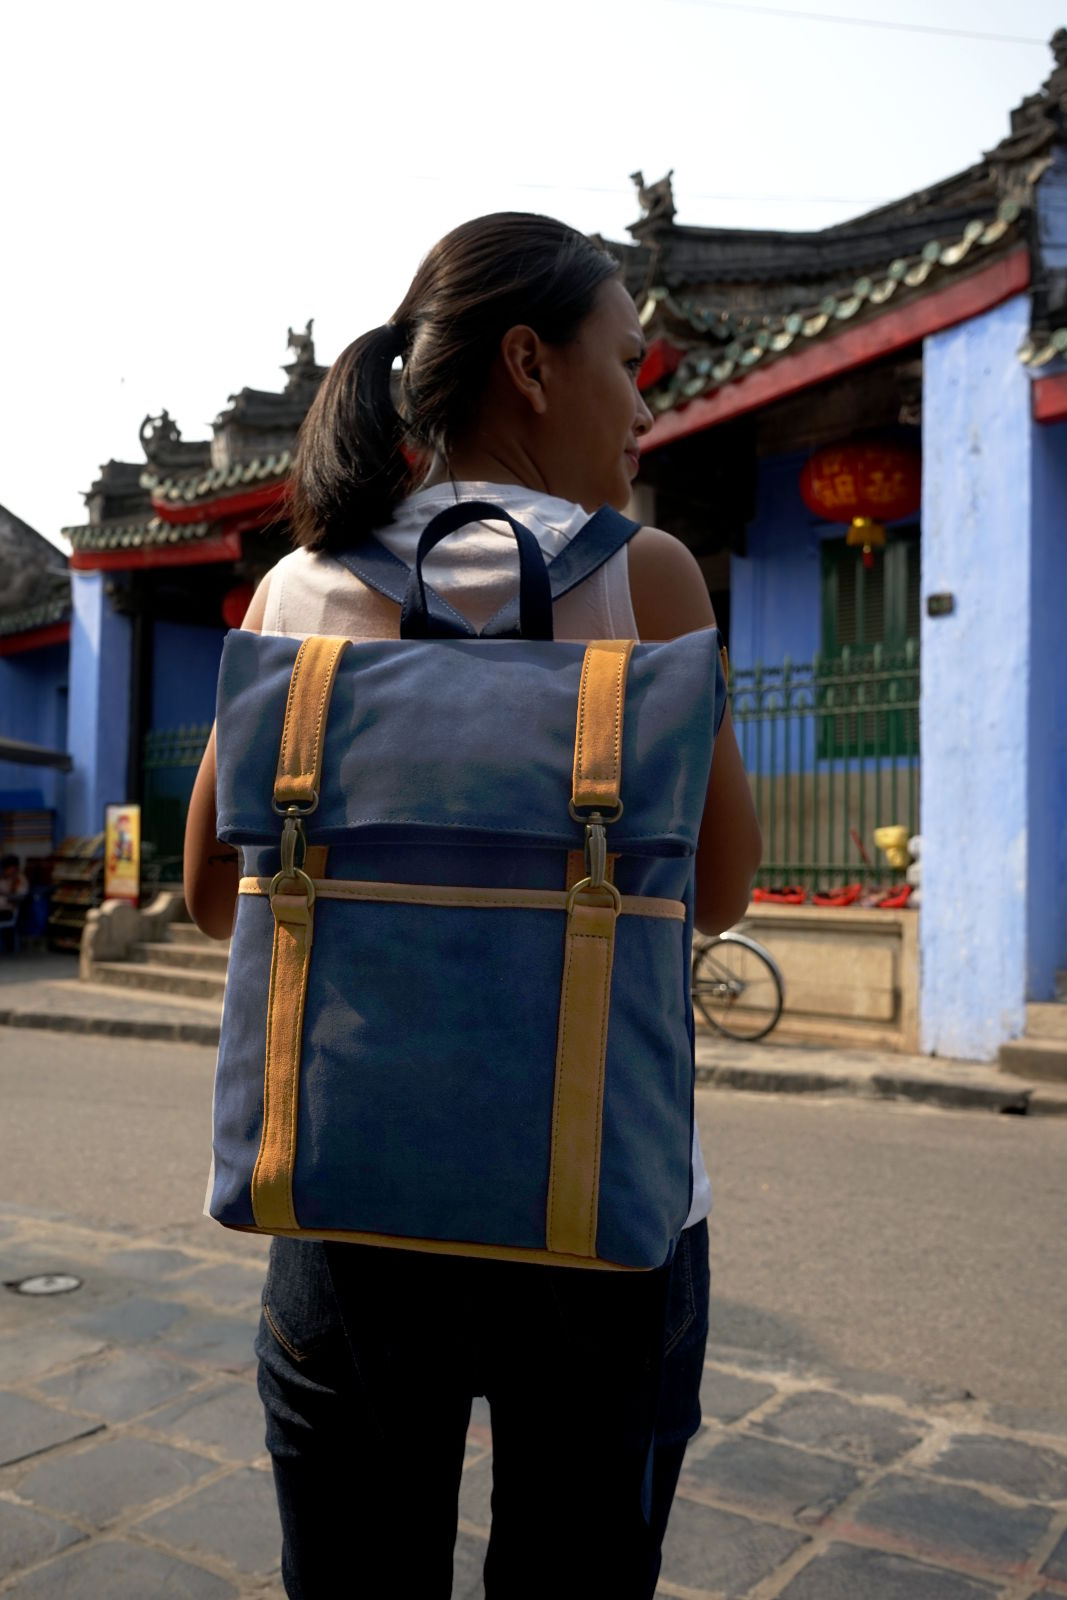 Hoi An Real Leather - Da Bao Real Leather: Suede buffalo leather messenger backpack. Blue color with light-brown decoration. Spacious and easy to carry backpack in vintage style. .